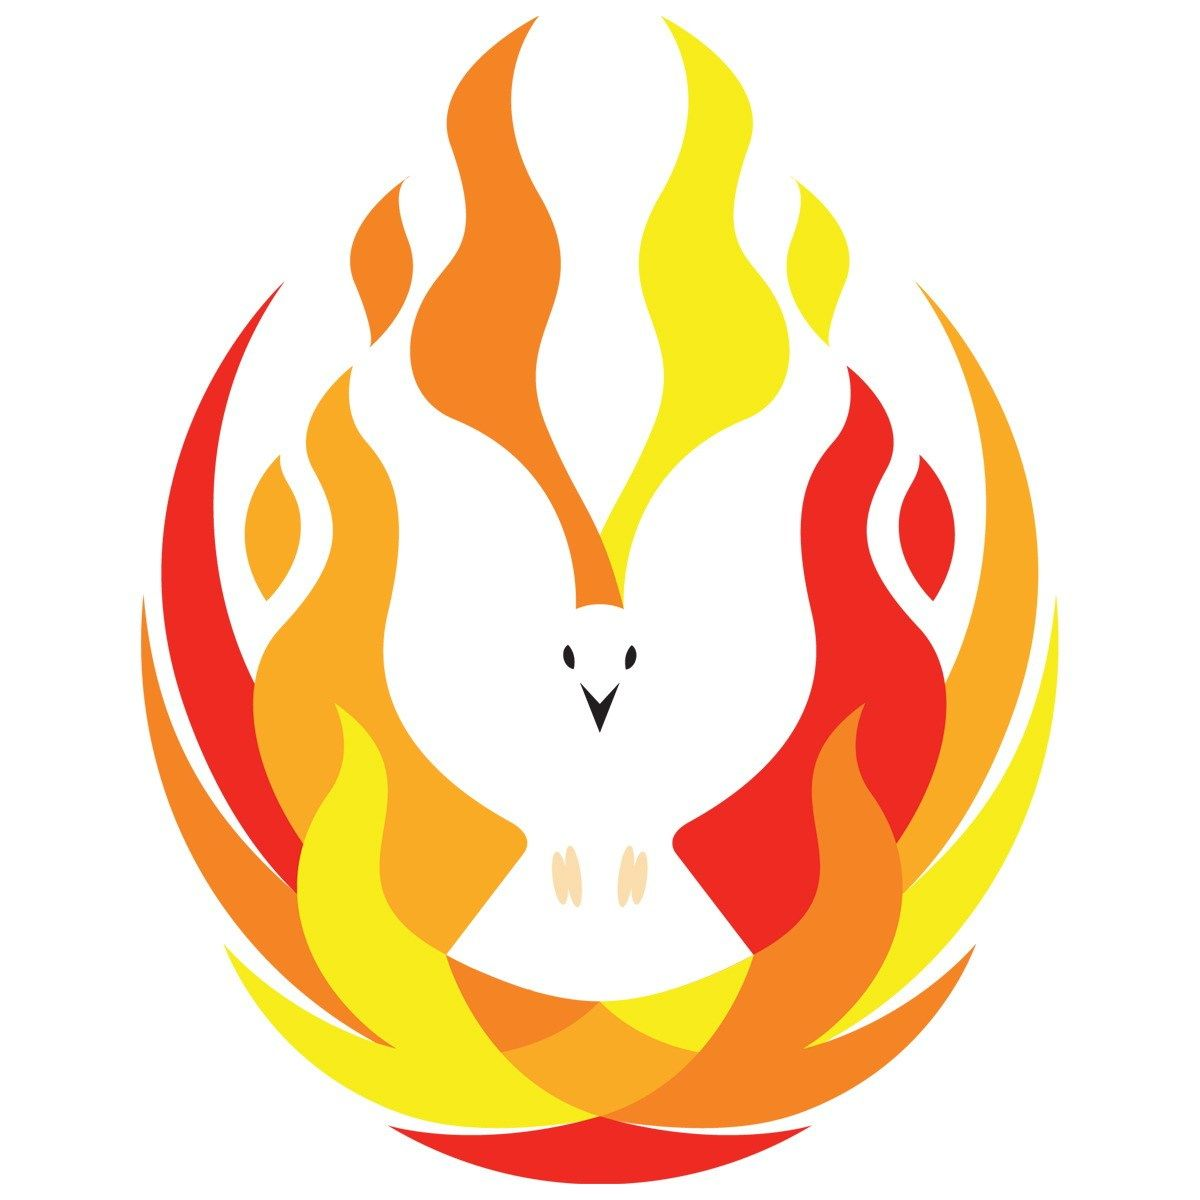 Day Of Pentecost Clipart at GetDrawings.com.